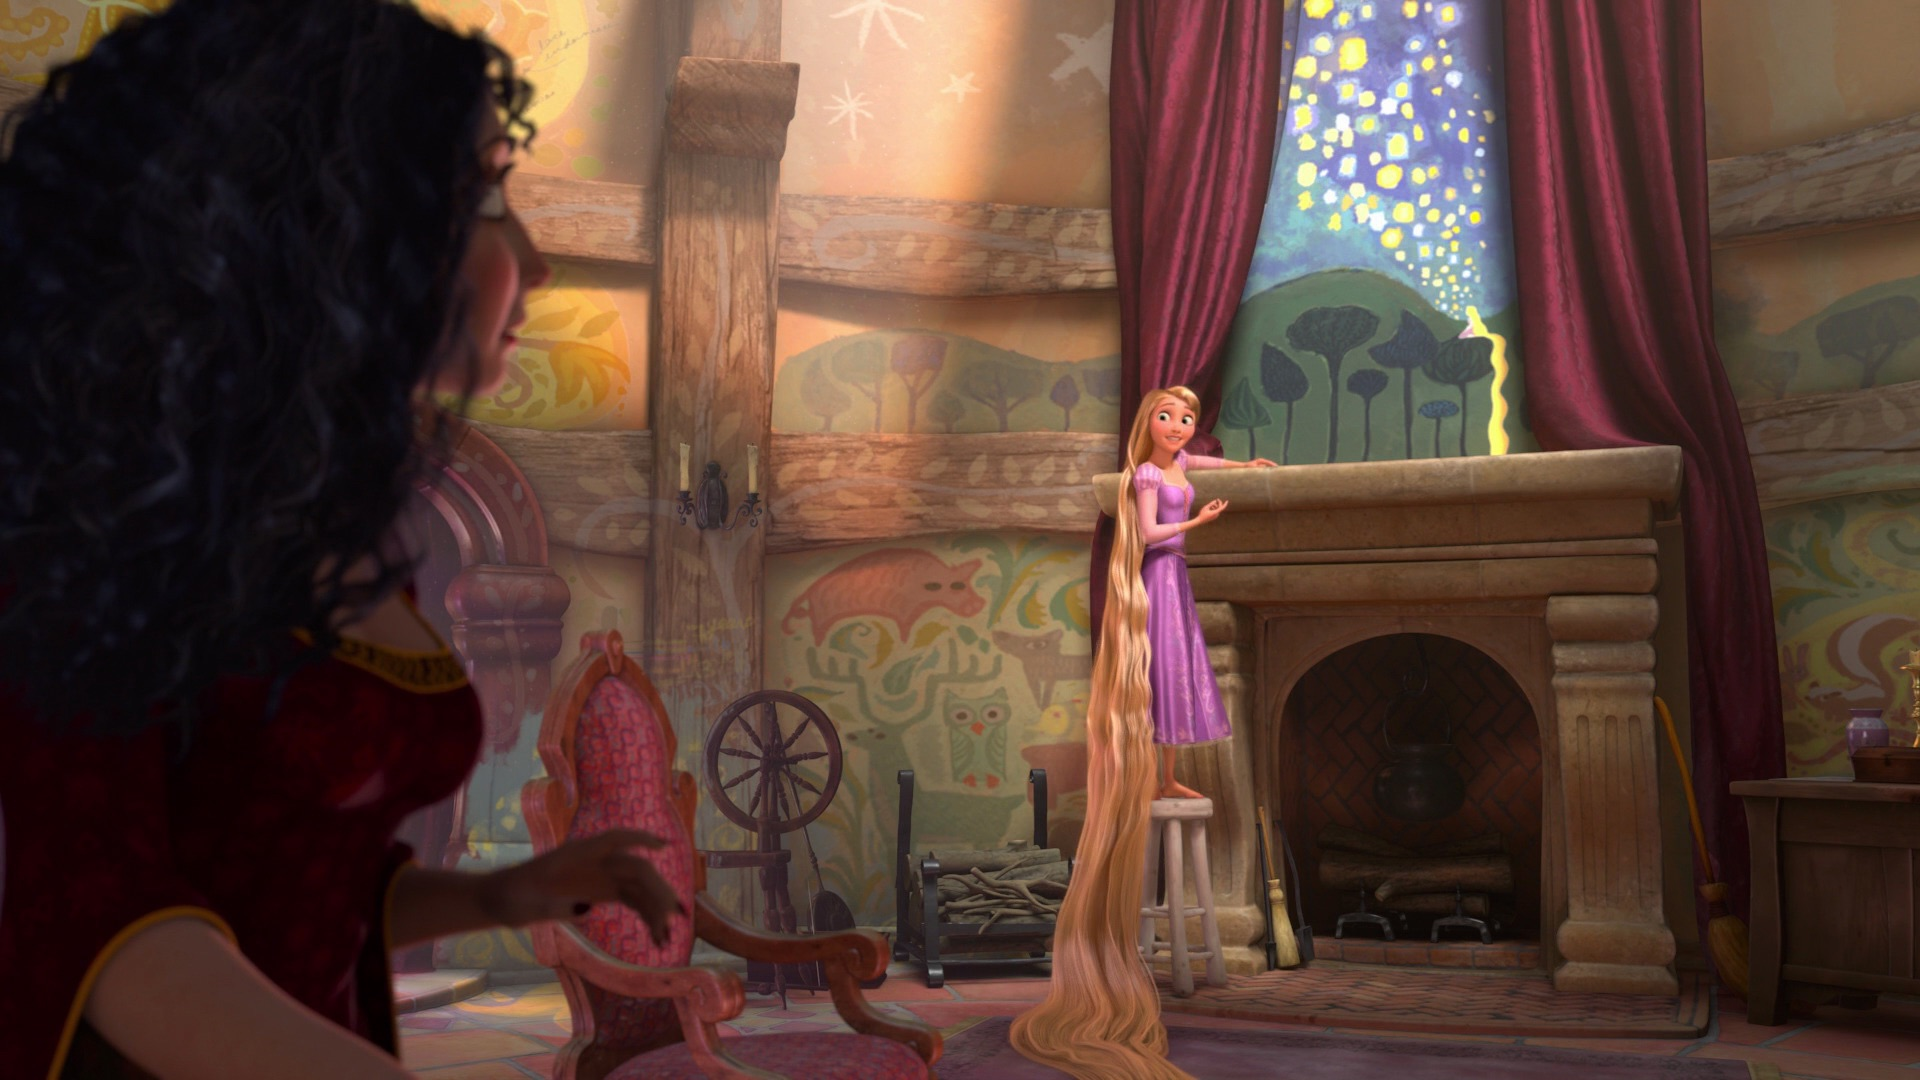 movie review 39 tangled 39 has the most twisted villain of all the disney films marcusgohmarcusgoh. Black Bedroom Furniture Sets. Home Design Ideas